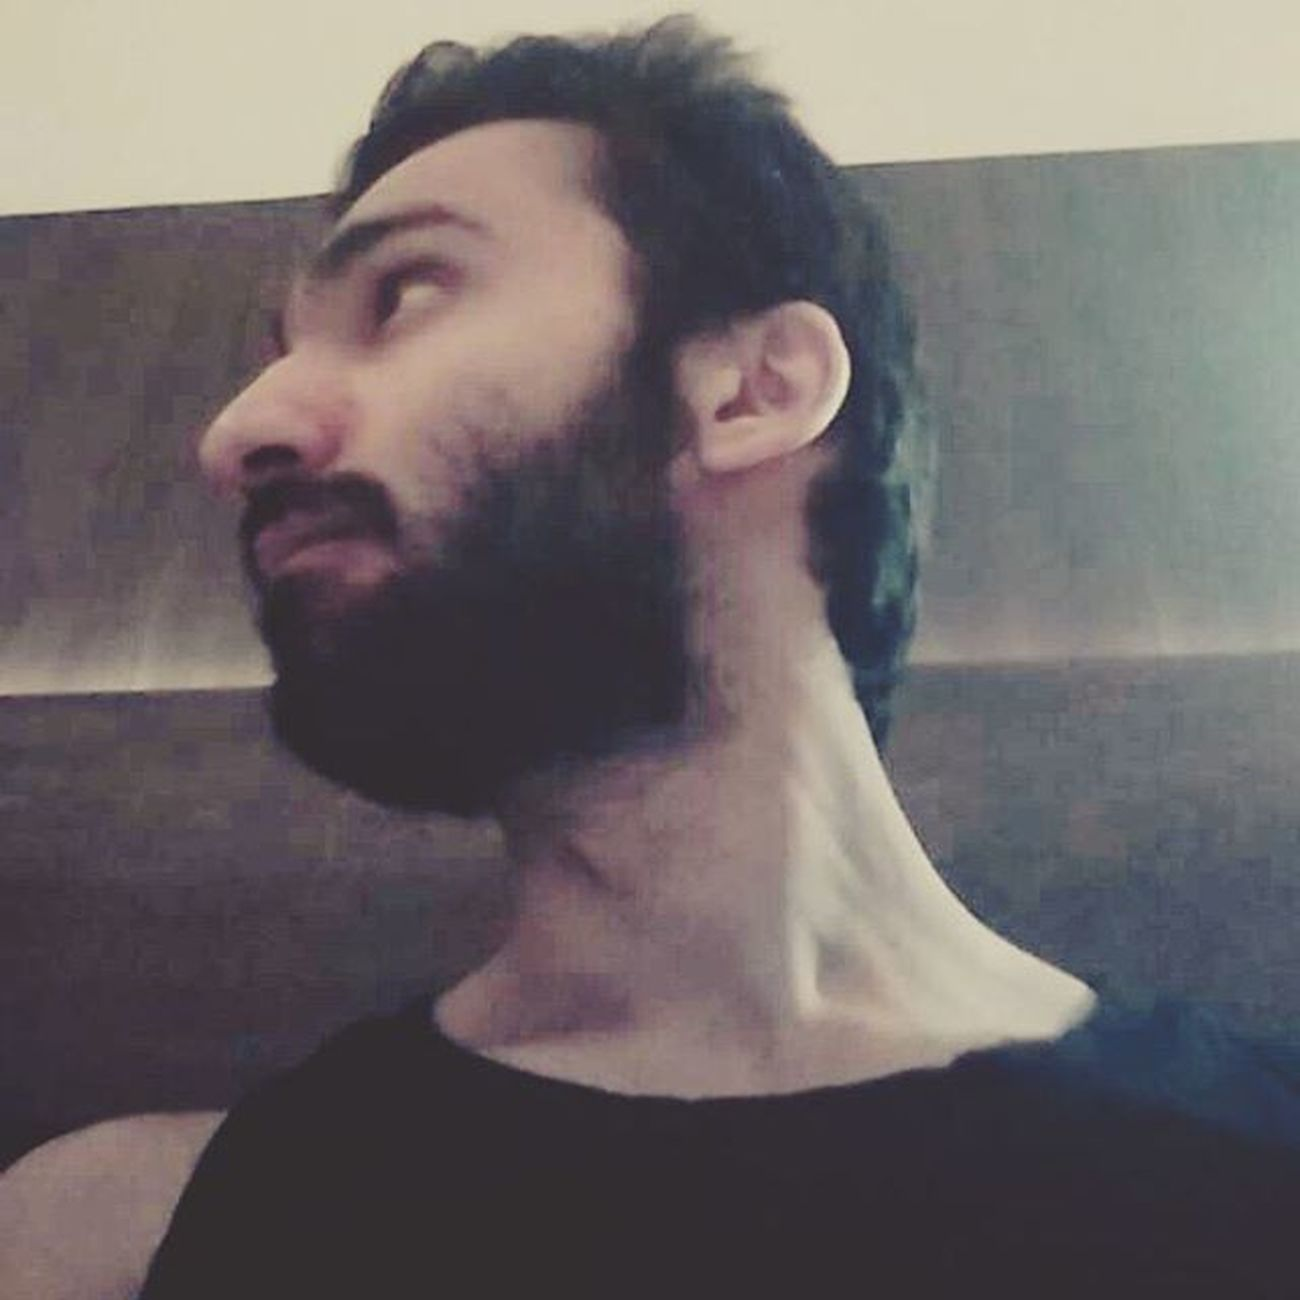 Adam's Apple And I. Adamsapple Wreckitralph Hippie Beardgang DelhiGram